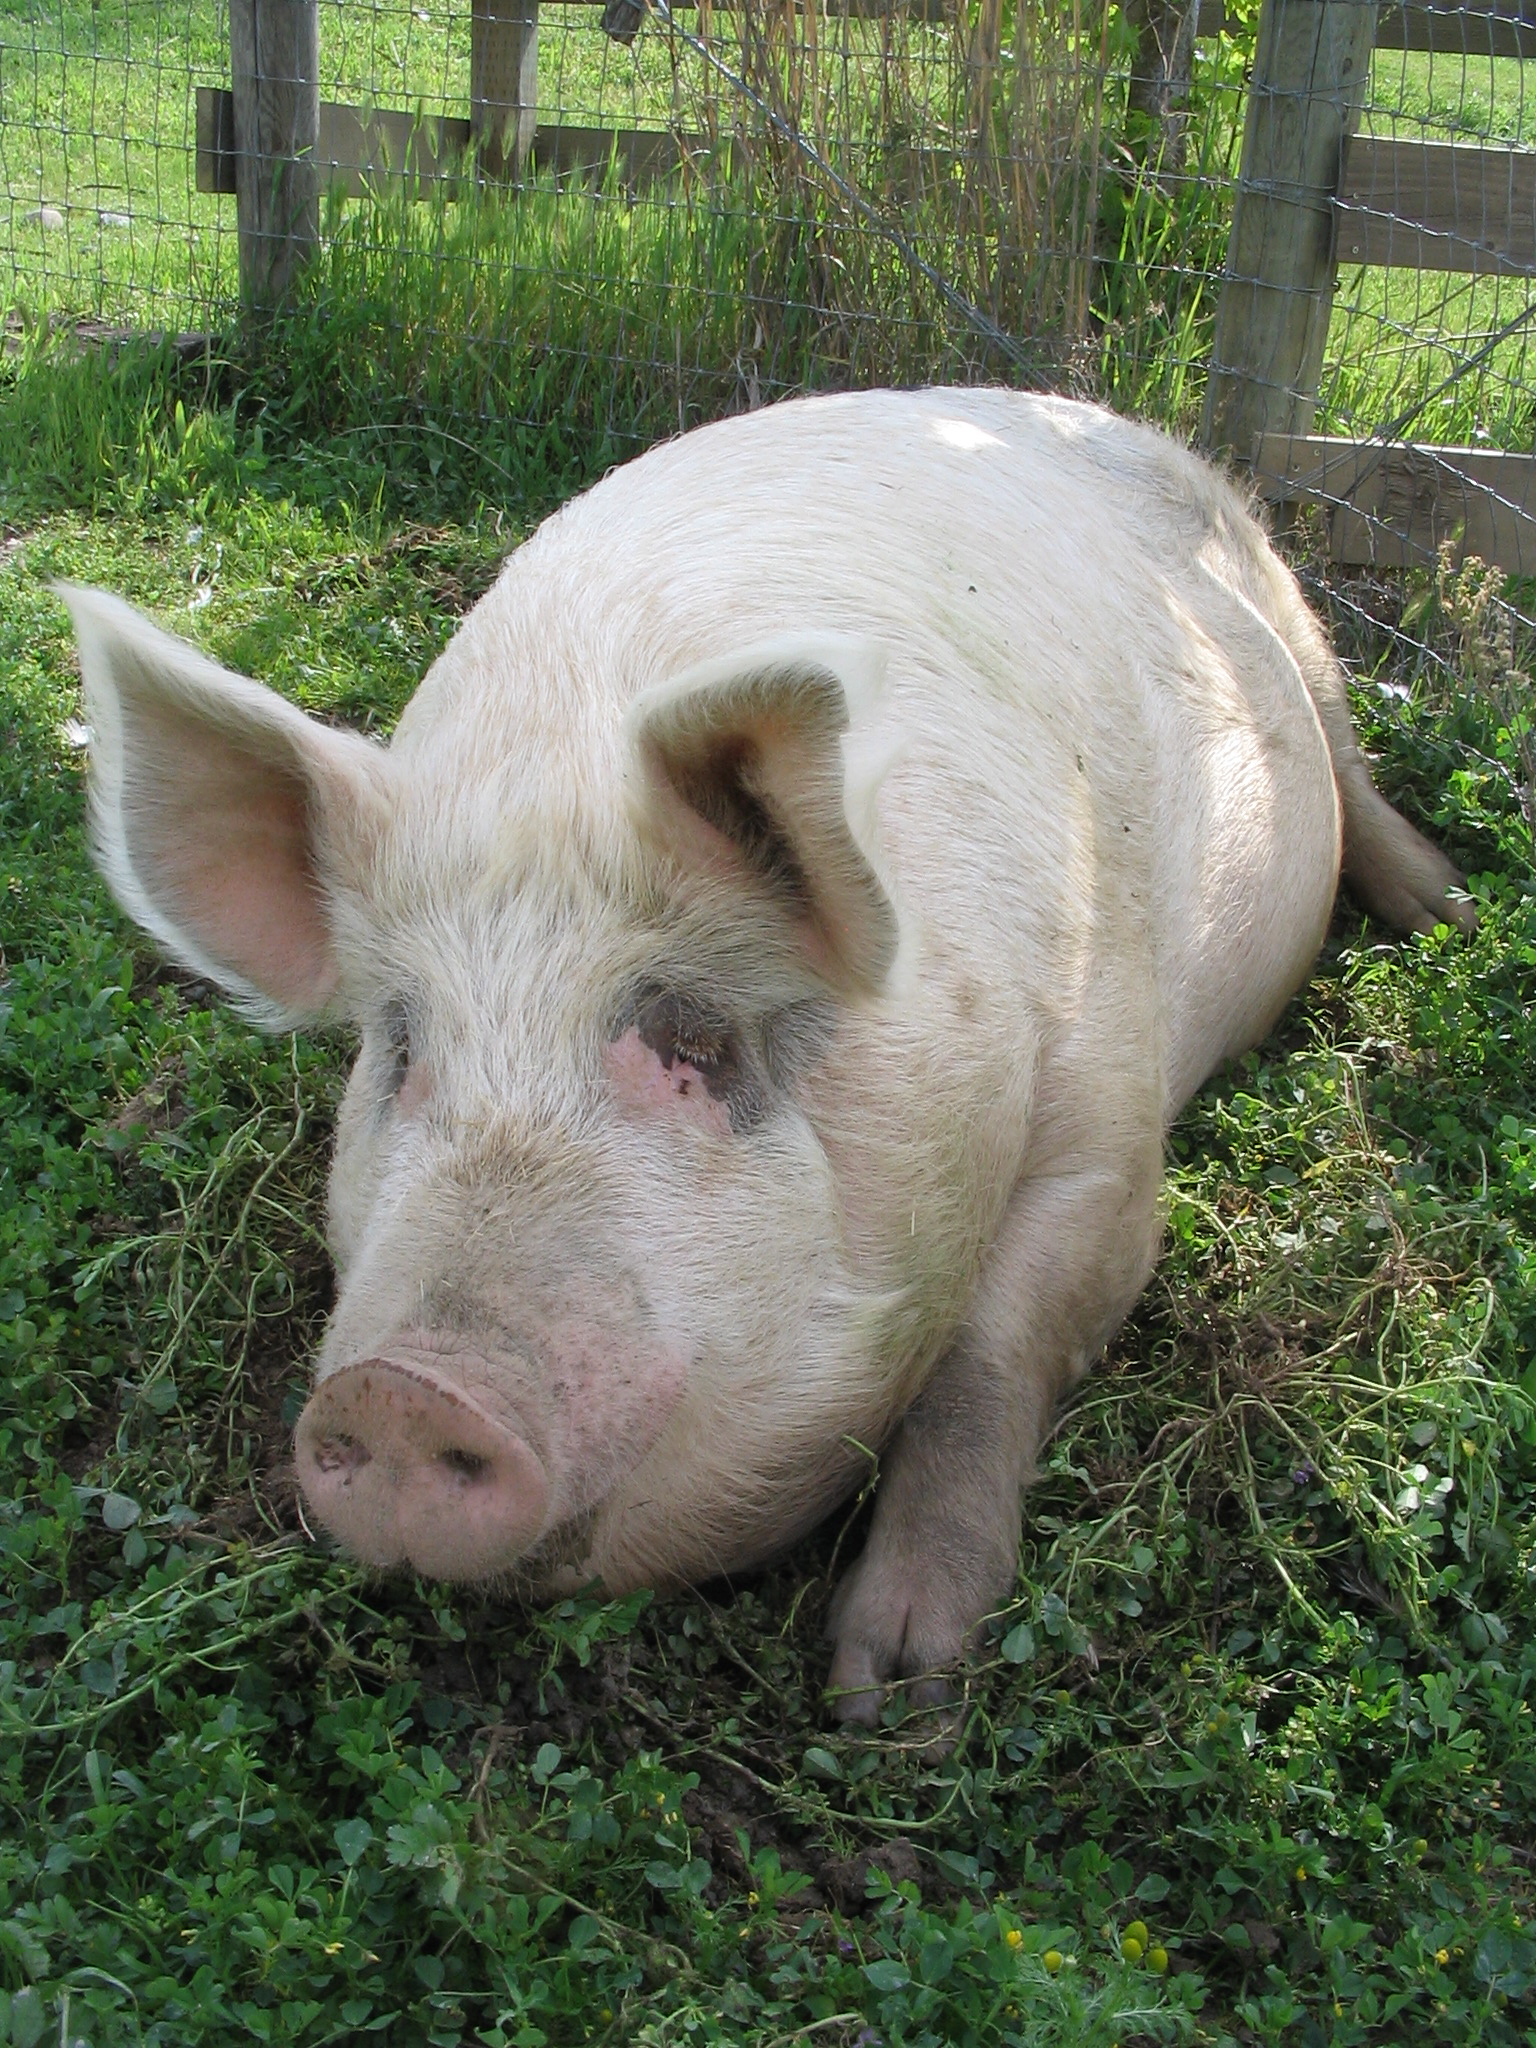 Lil' Bud pig, rescued in the 2012 Cattaraugus rescue.